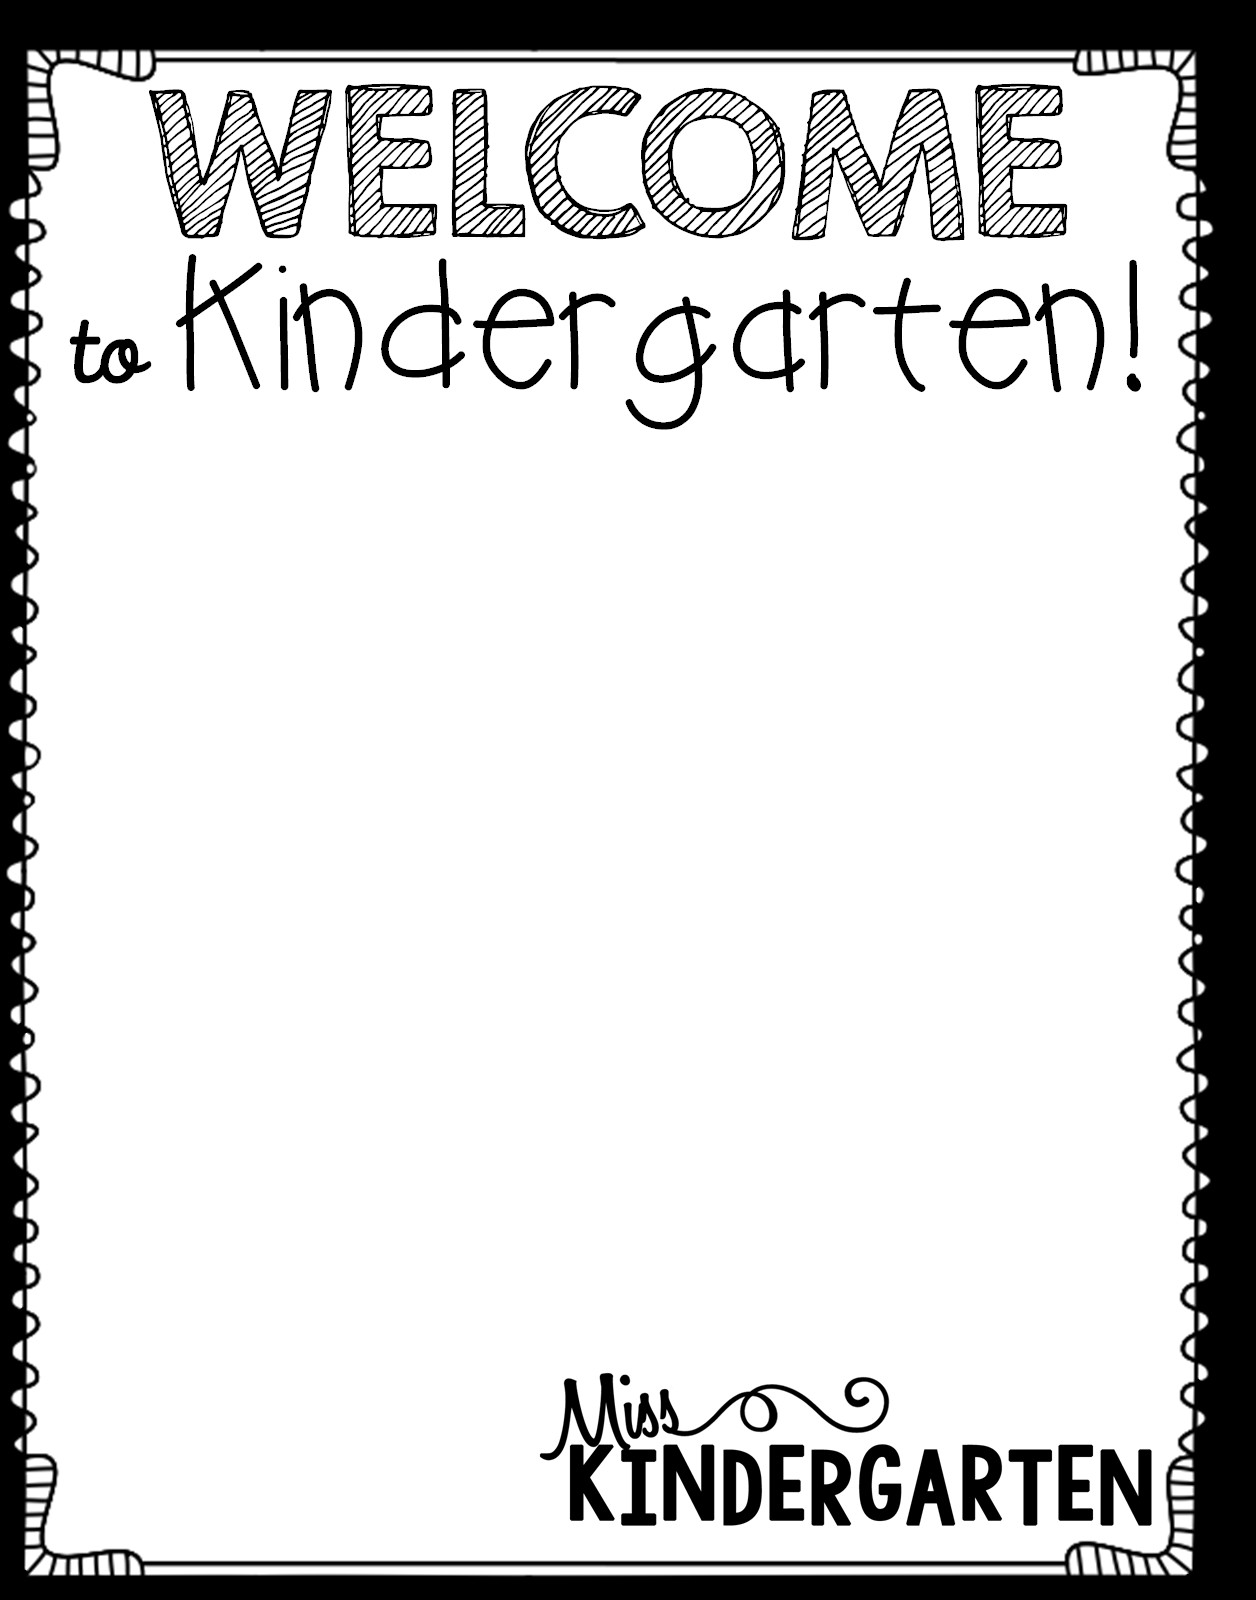 Preschool Welcome Letter Template Getting organized New Student Bags Miss Kindergarten